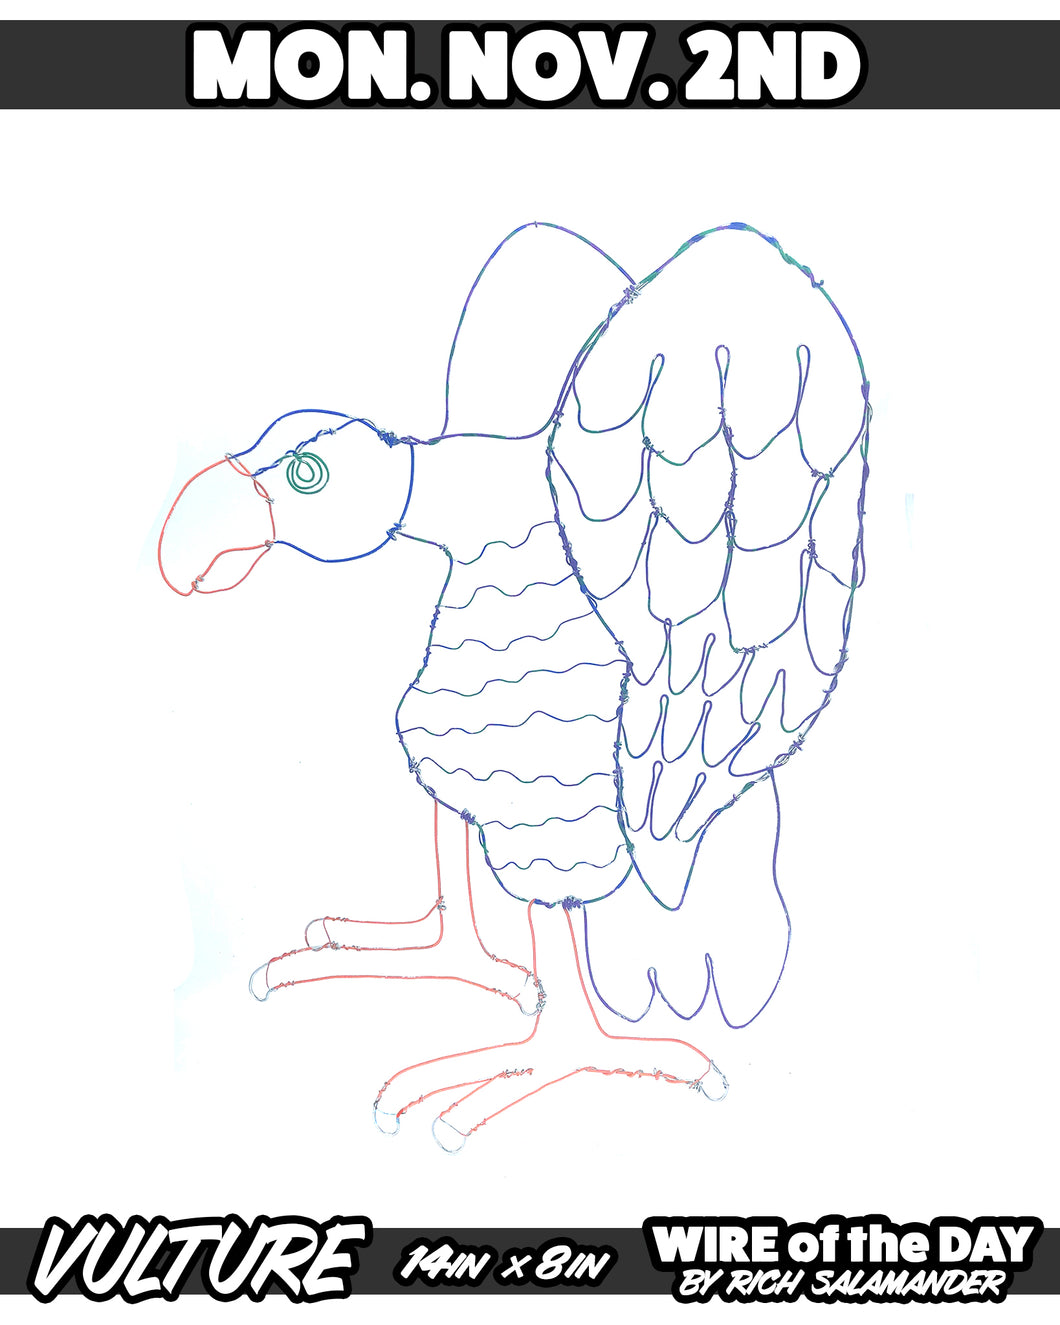 WIRE of the DAY VULTURE